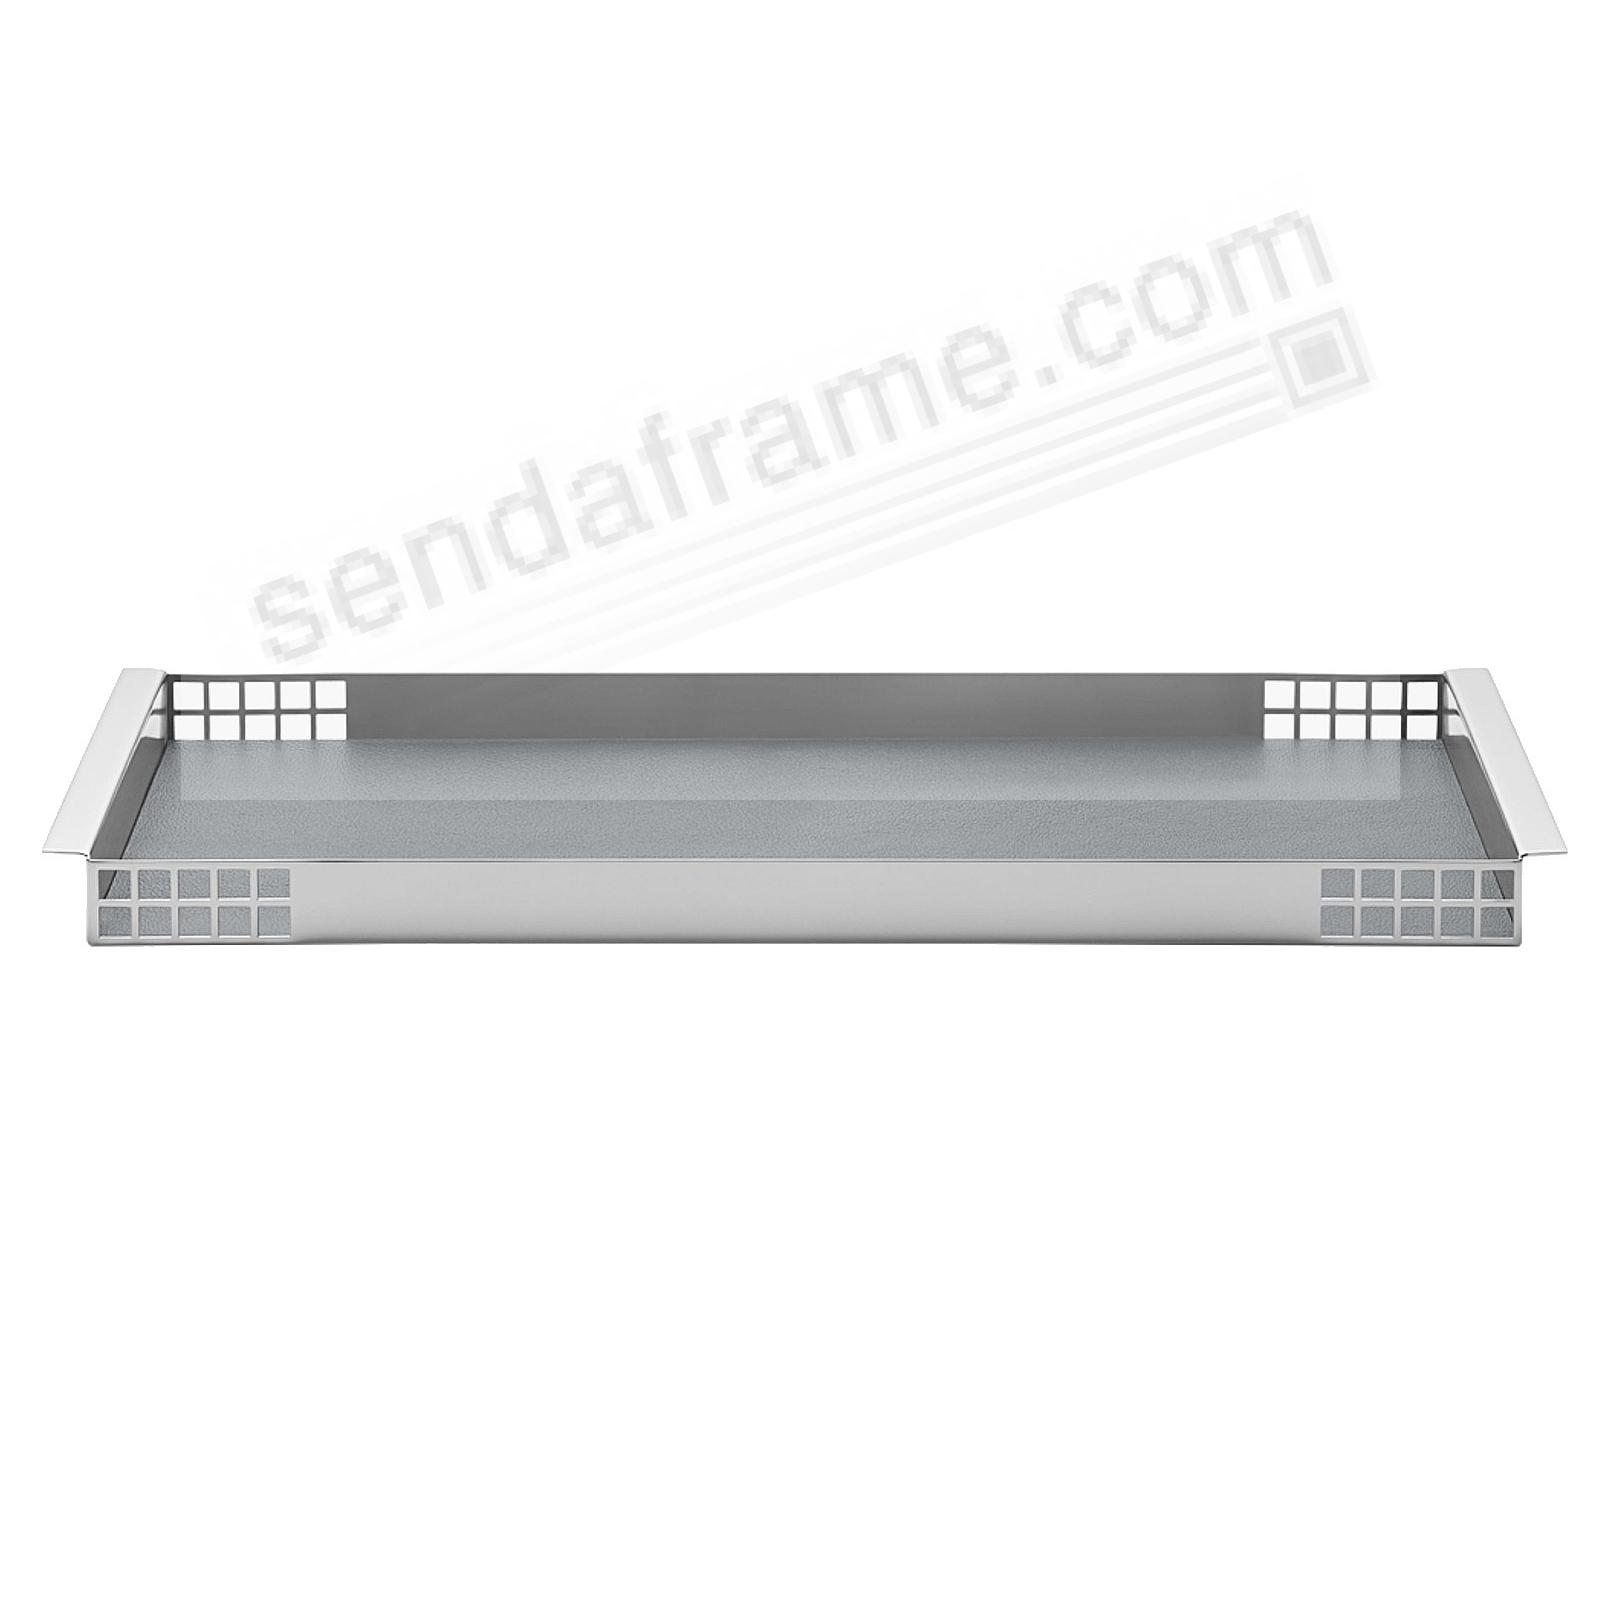 The MATRIX TRAY (Medium) 15x5 by Georg Jensen®